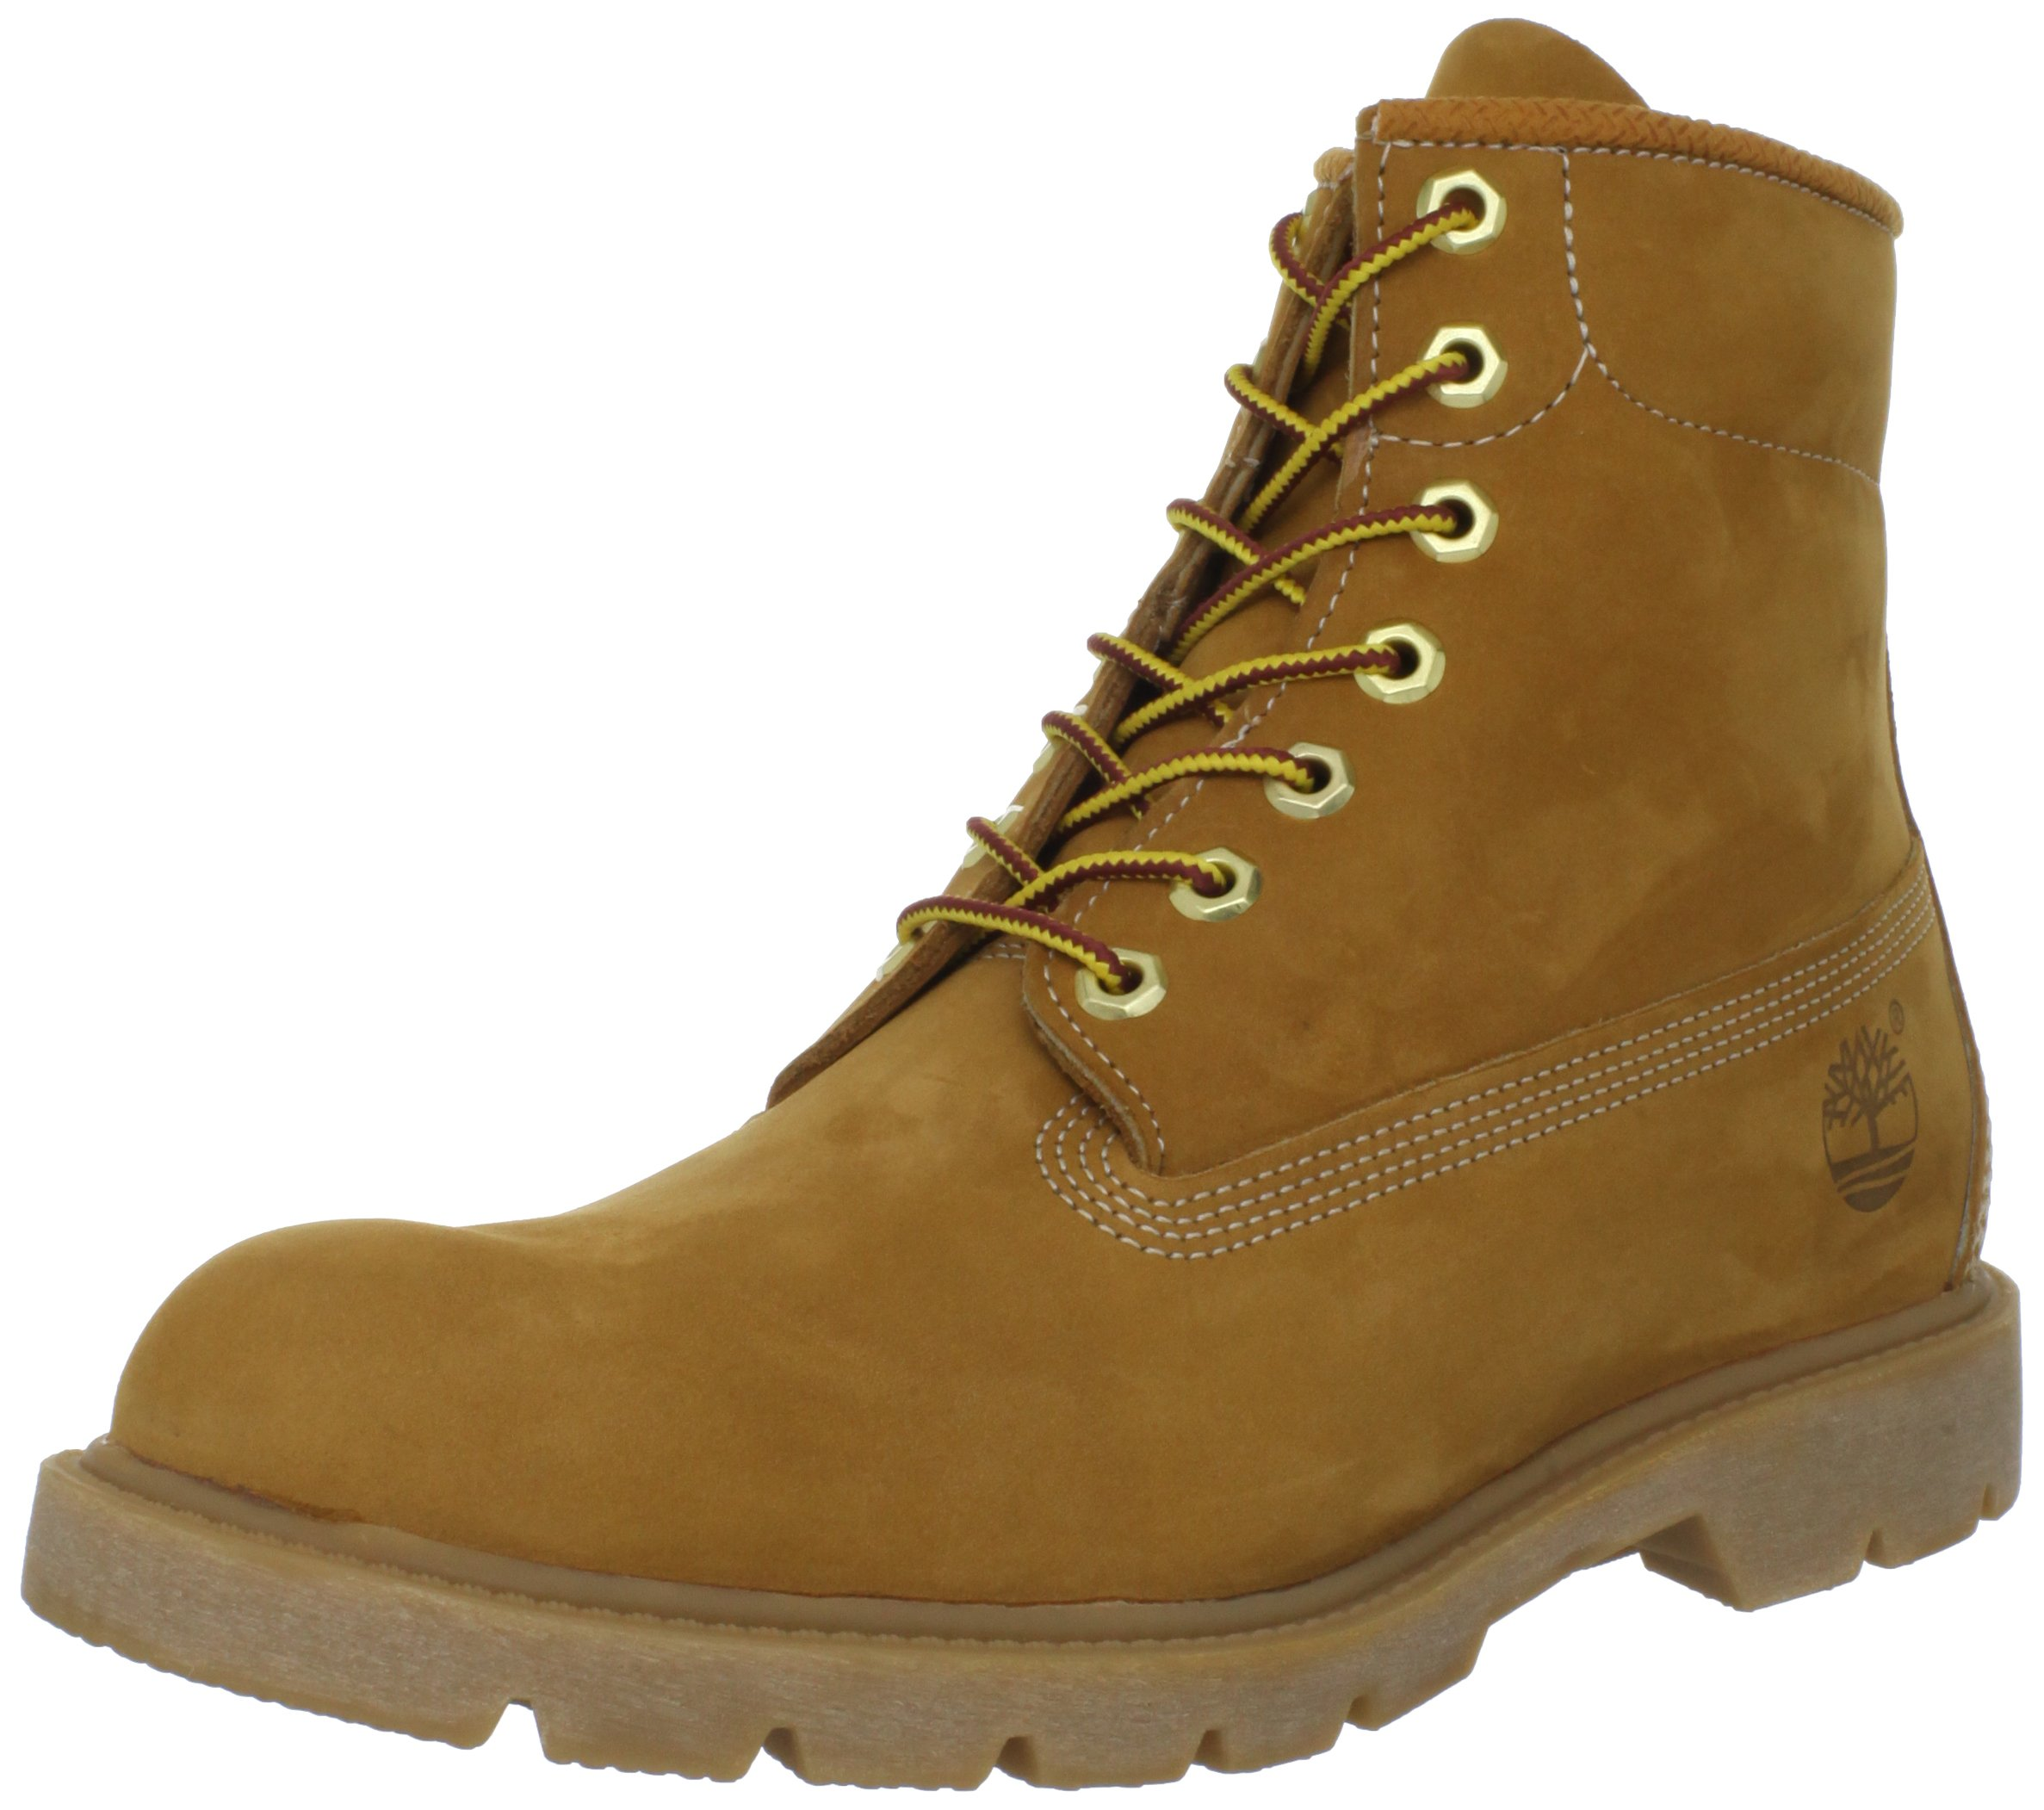 Timberland Men's Six-Inch Basic Boot,Wheat Nubuck,12 M US